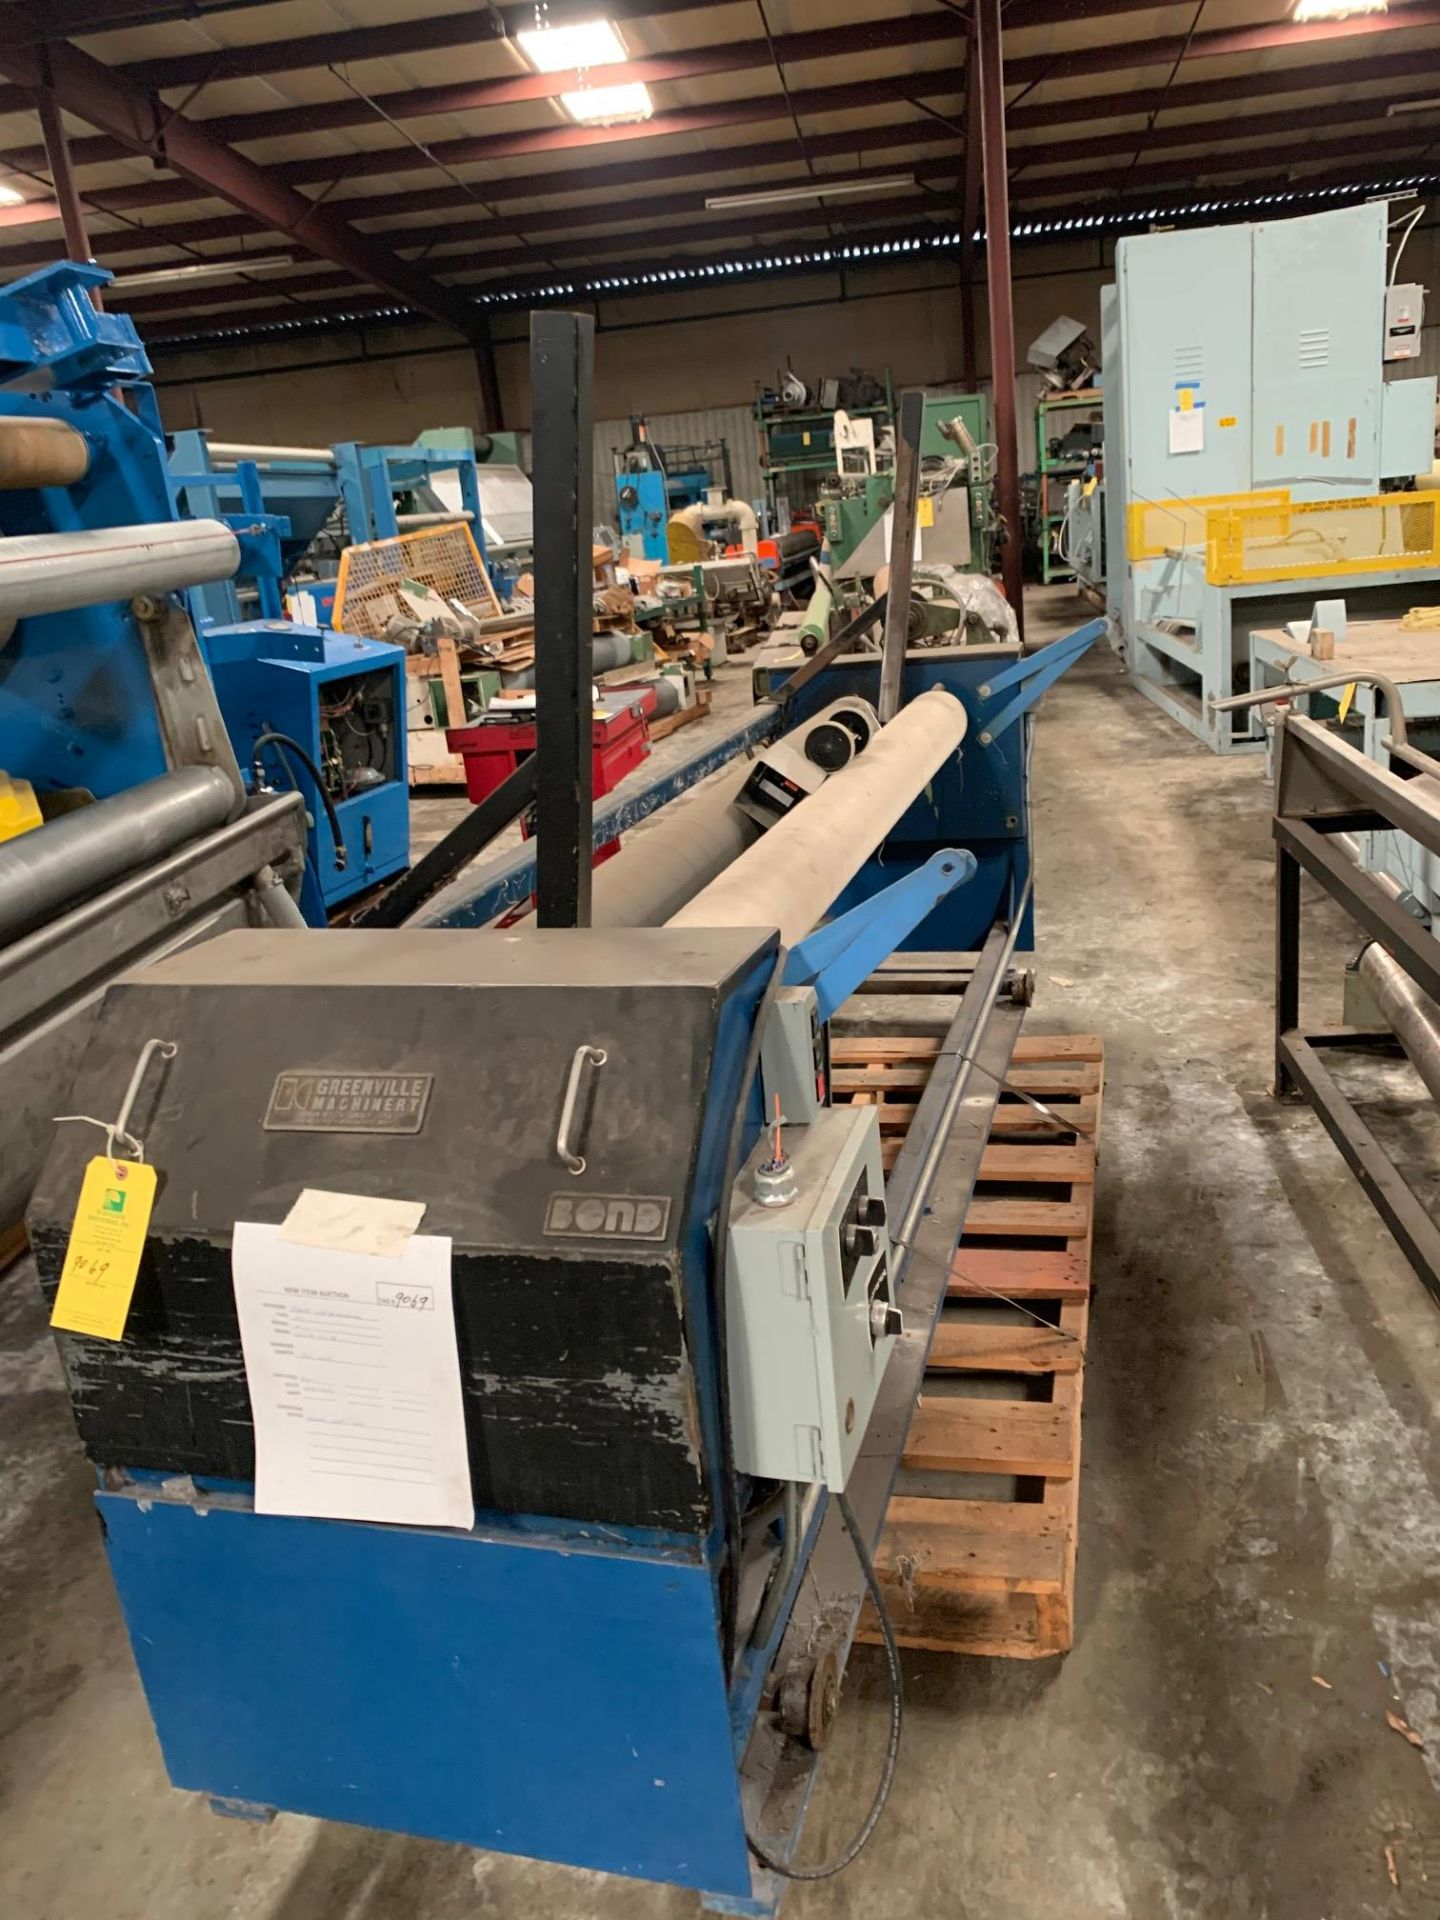 """Lot 21188 - Greenville Machinery Bond Roll Up Machine, Serial# 2379-16, Working Width 86"""", 208/230V, Rigging Fee"""